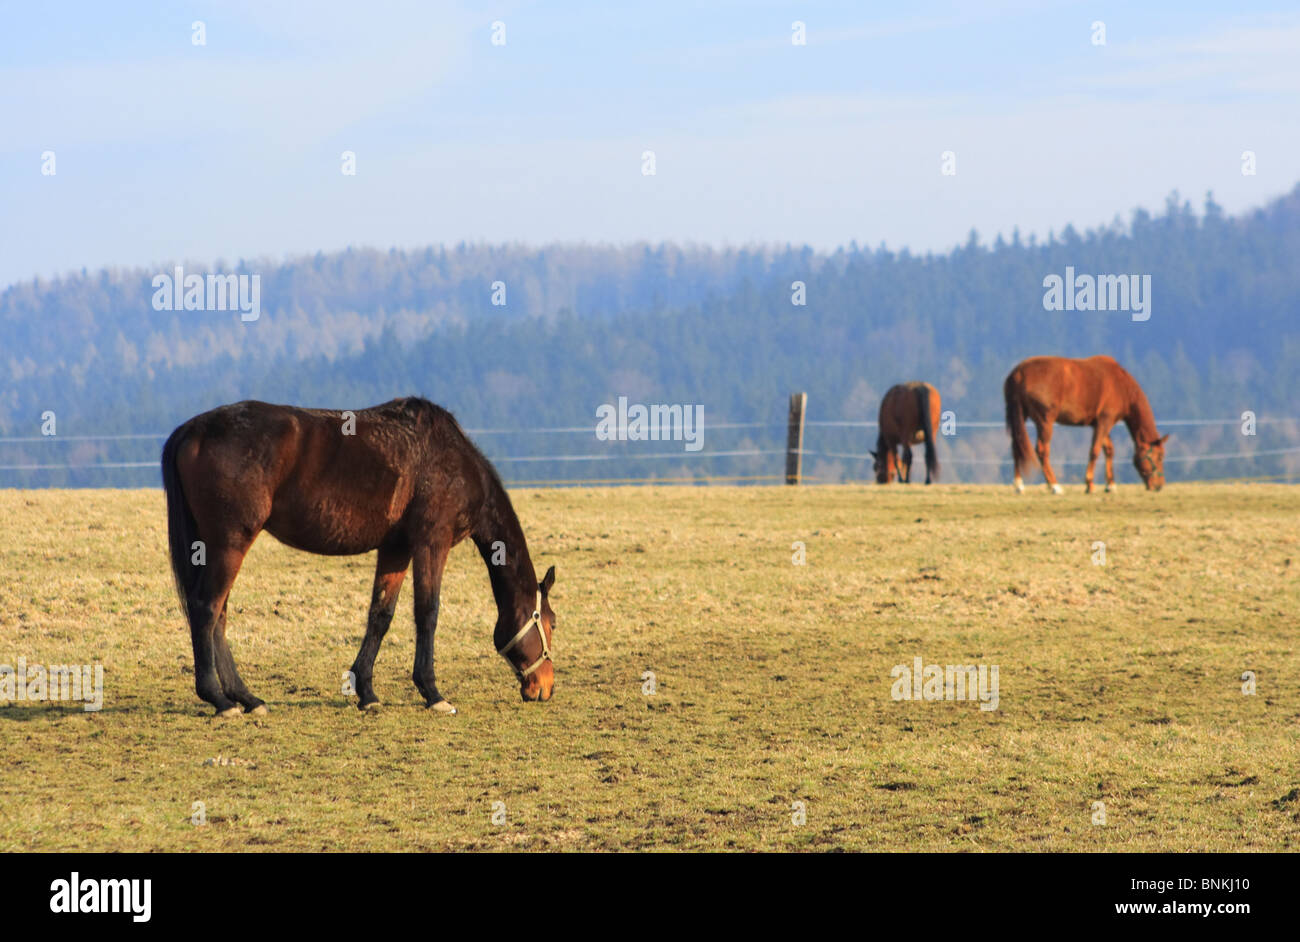 Horse grazing, grass and forest - Stock Image